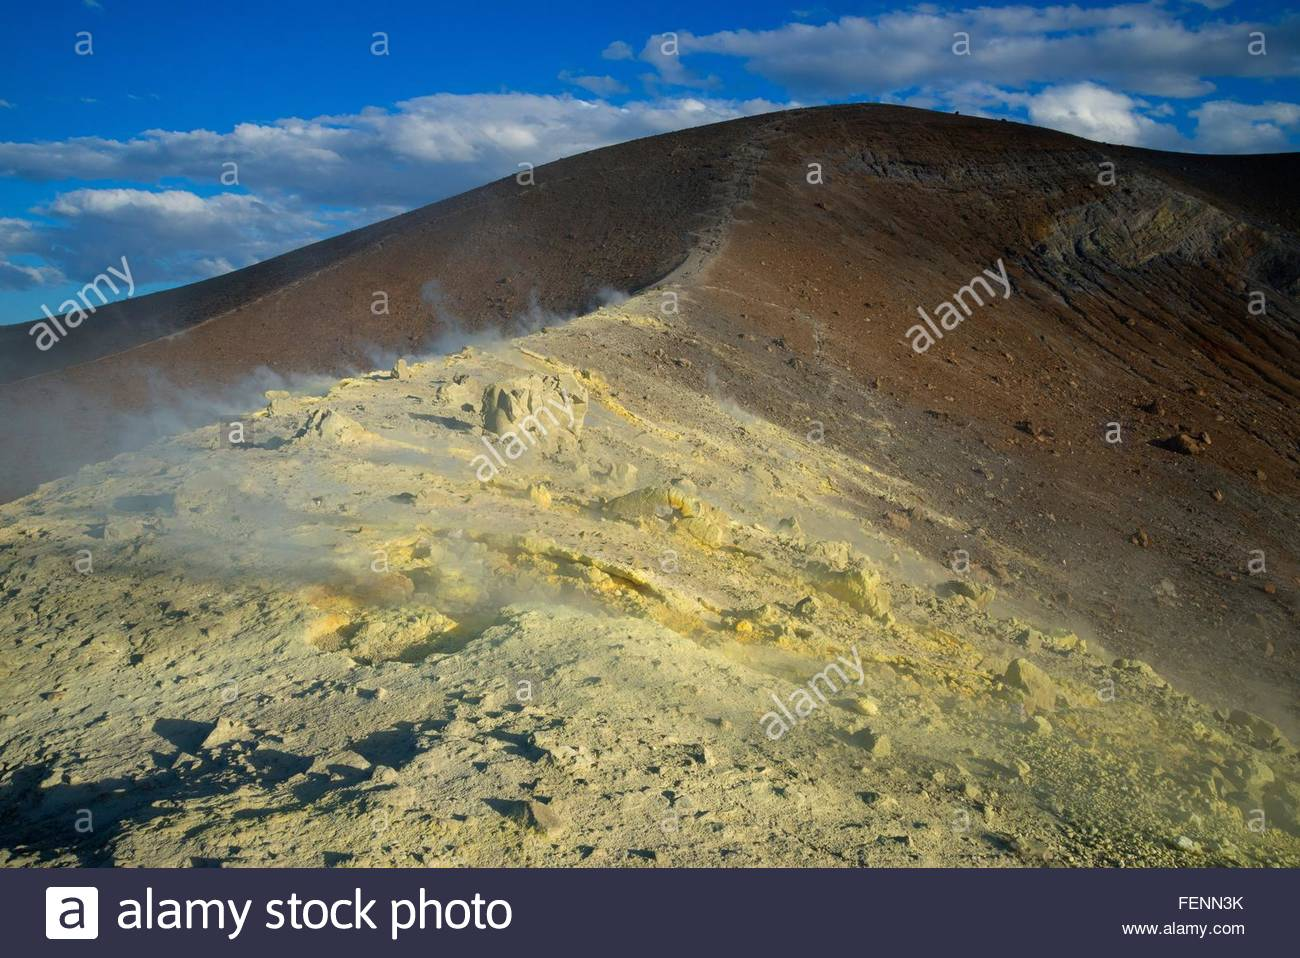 Sulphur and fumarole smoke at Gran Cratere, Vulcano Island, Aeolian Islands, Sicily, Italy - Stock Image